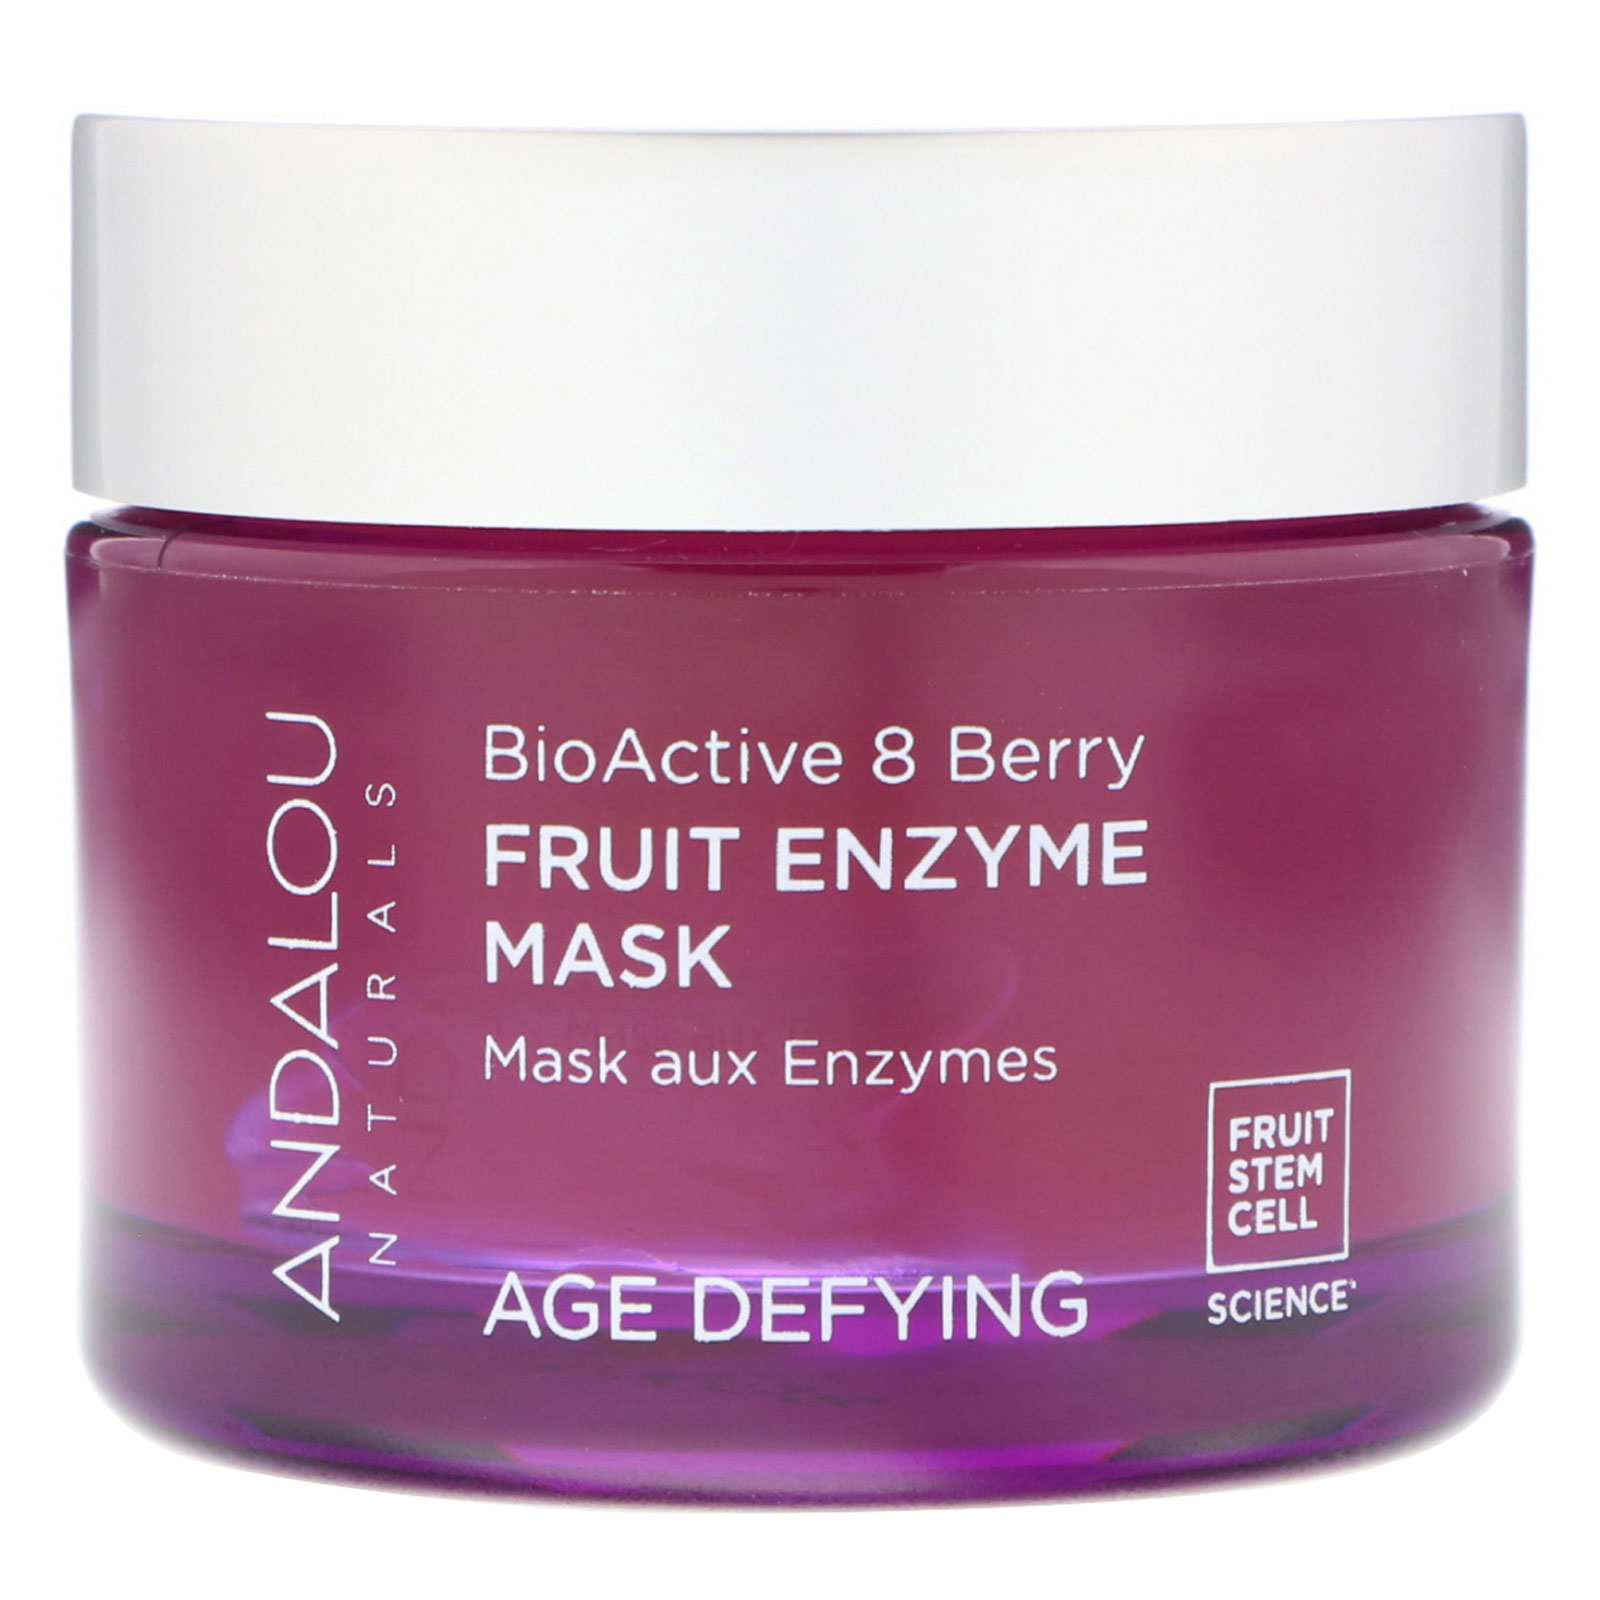 Age-Defying Enzyme Face Mask Bioactive 8 Berry - 1.7 oz. by Andalou Naturals (pack of 4) Burts Bees 100% Natural Moisturizing Lip Balm, Vanilla Bean -  2 Tubes